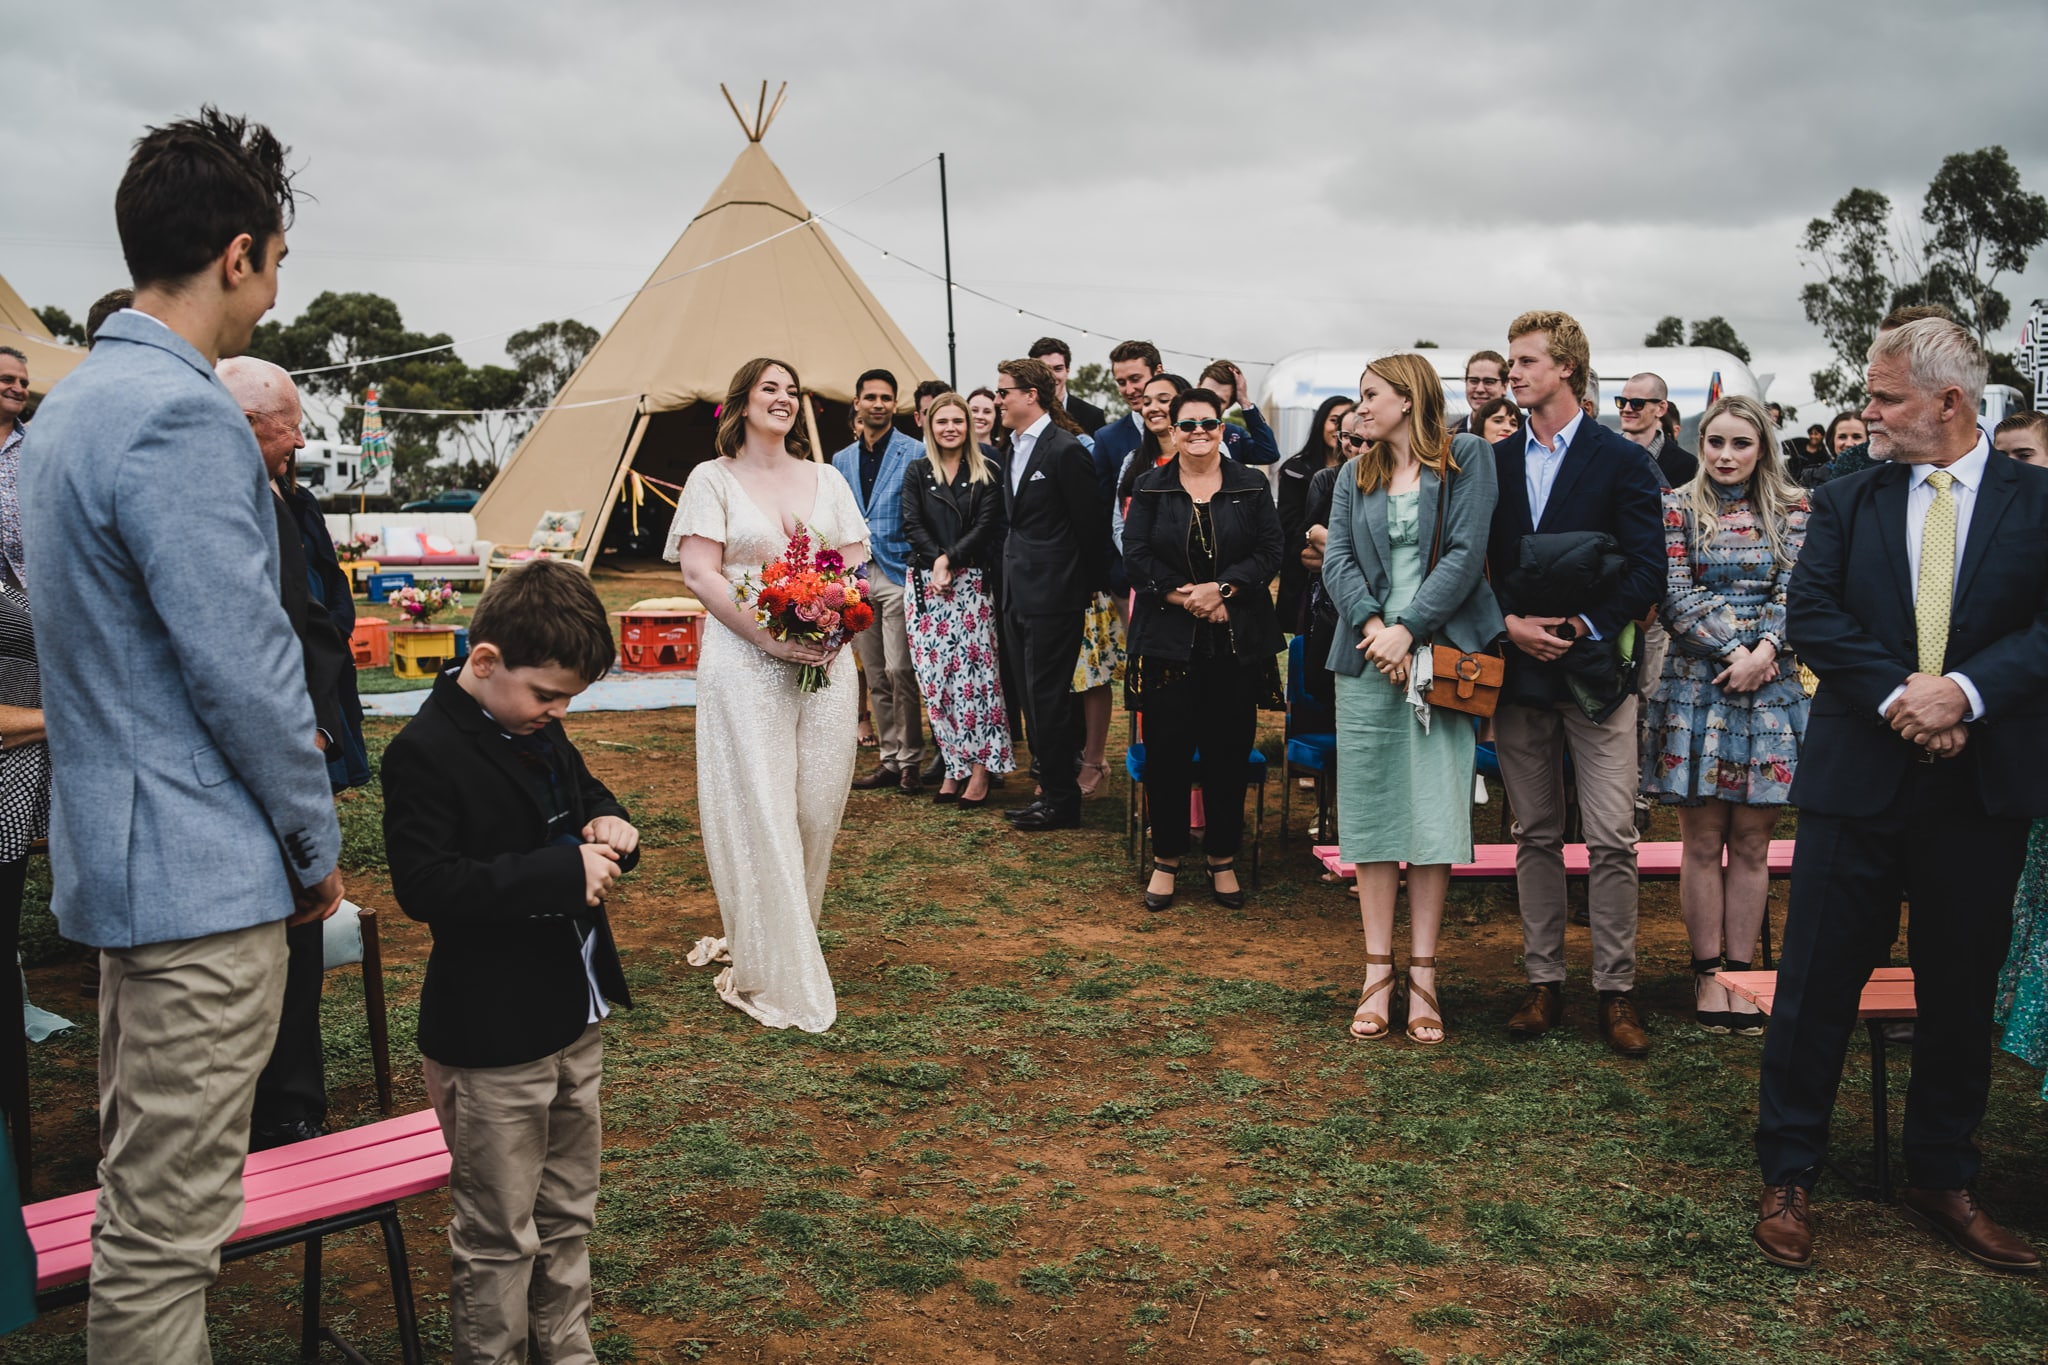 Bride walking down the isle at their Camp Sunnystones wedding festival